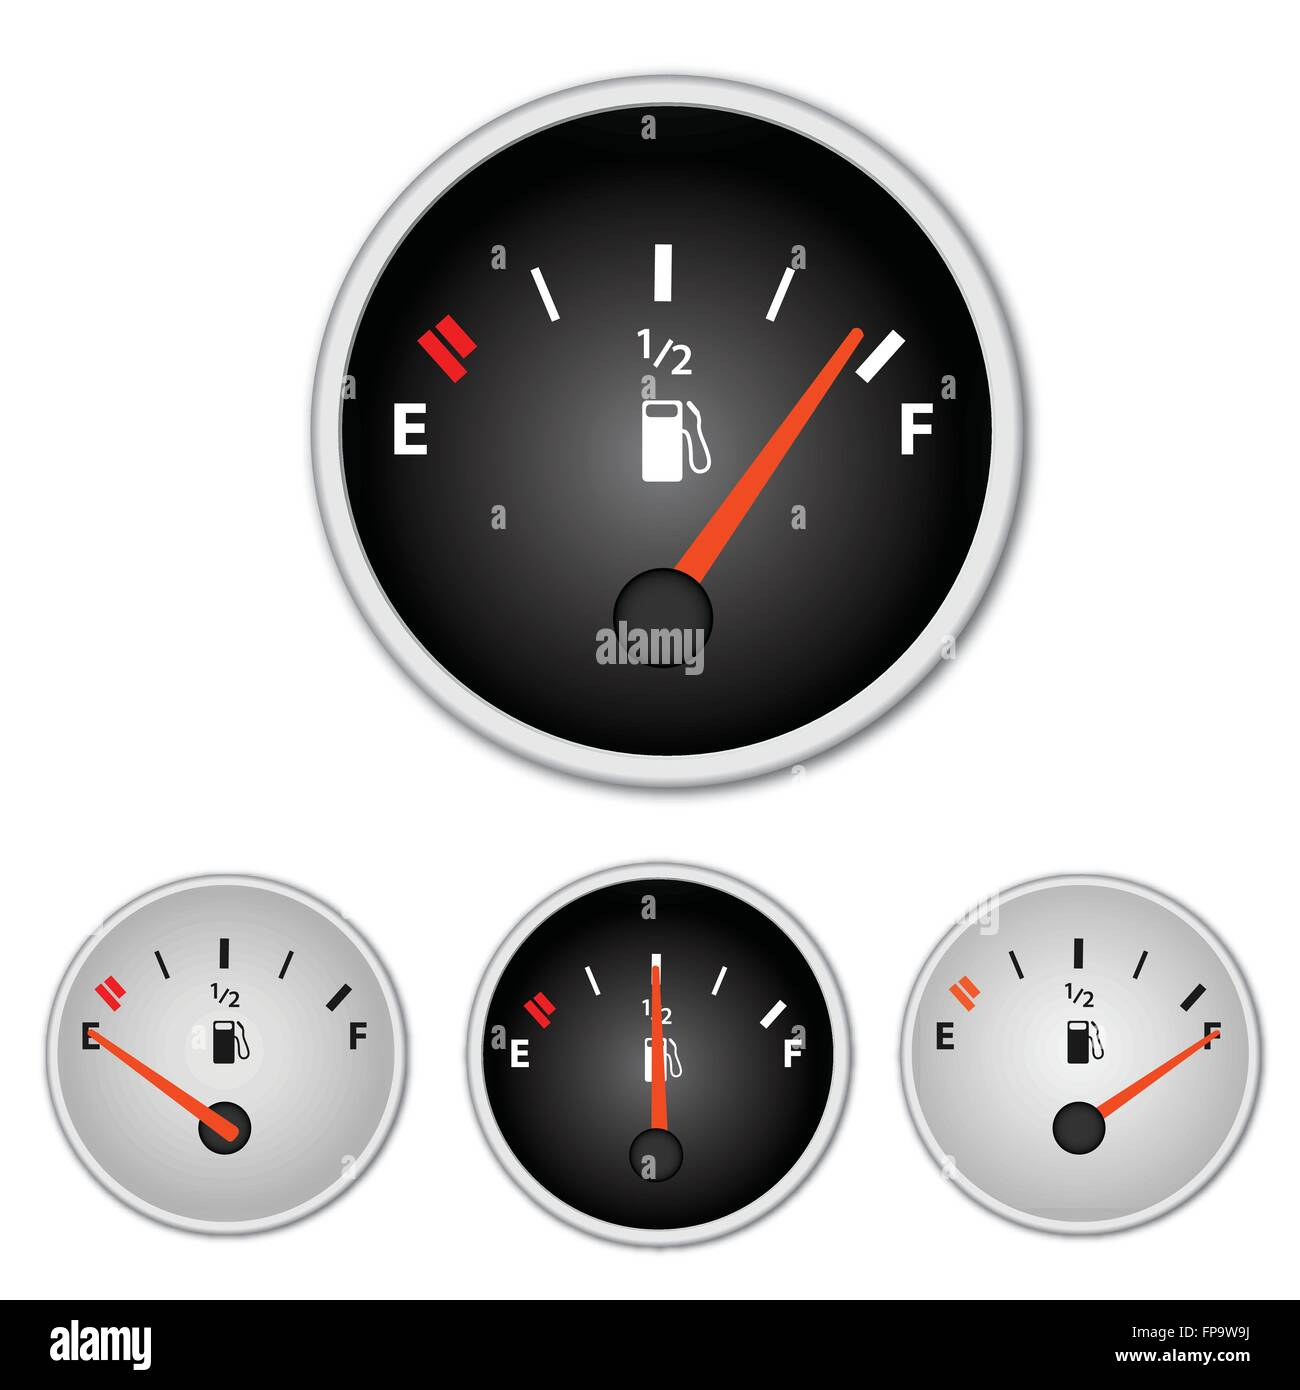 Image of various gas gages isolated on a white background. - Stock Image